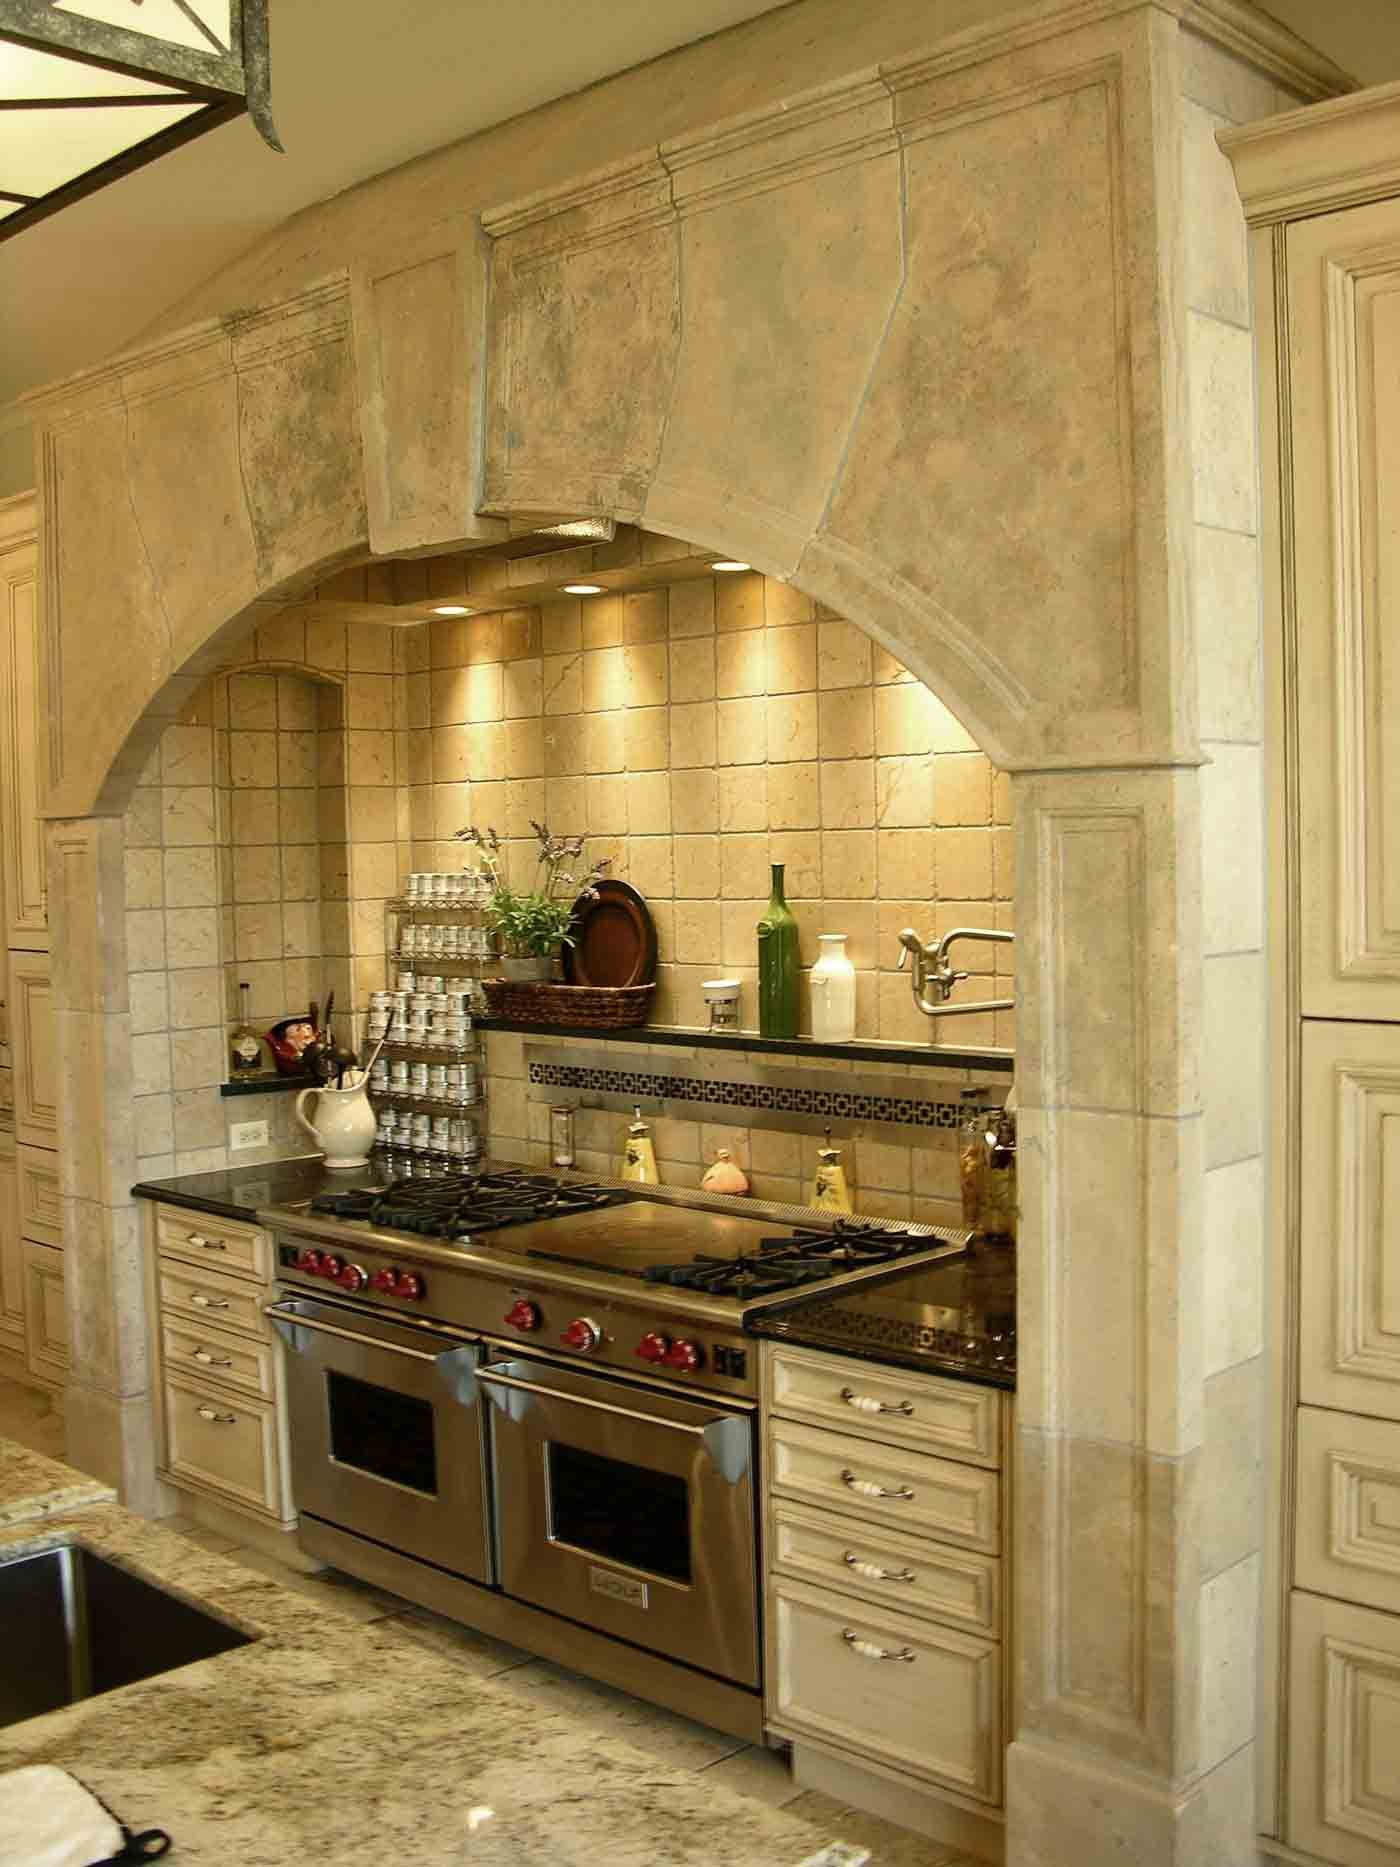 Kitchen Range Hood Design Ideas Part - 26: Architectural Stone | Best Kitchen Range Hoods Gallery | Materials  Marketing. I Could Live With